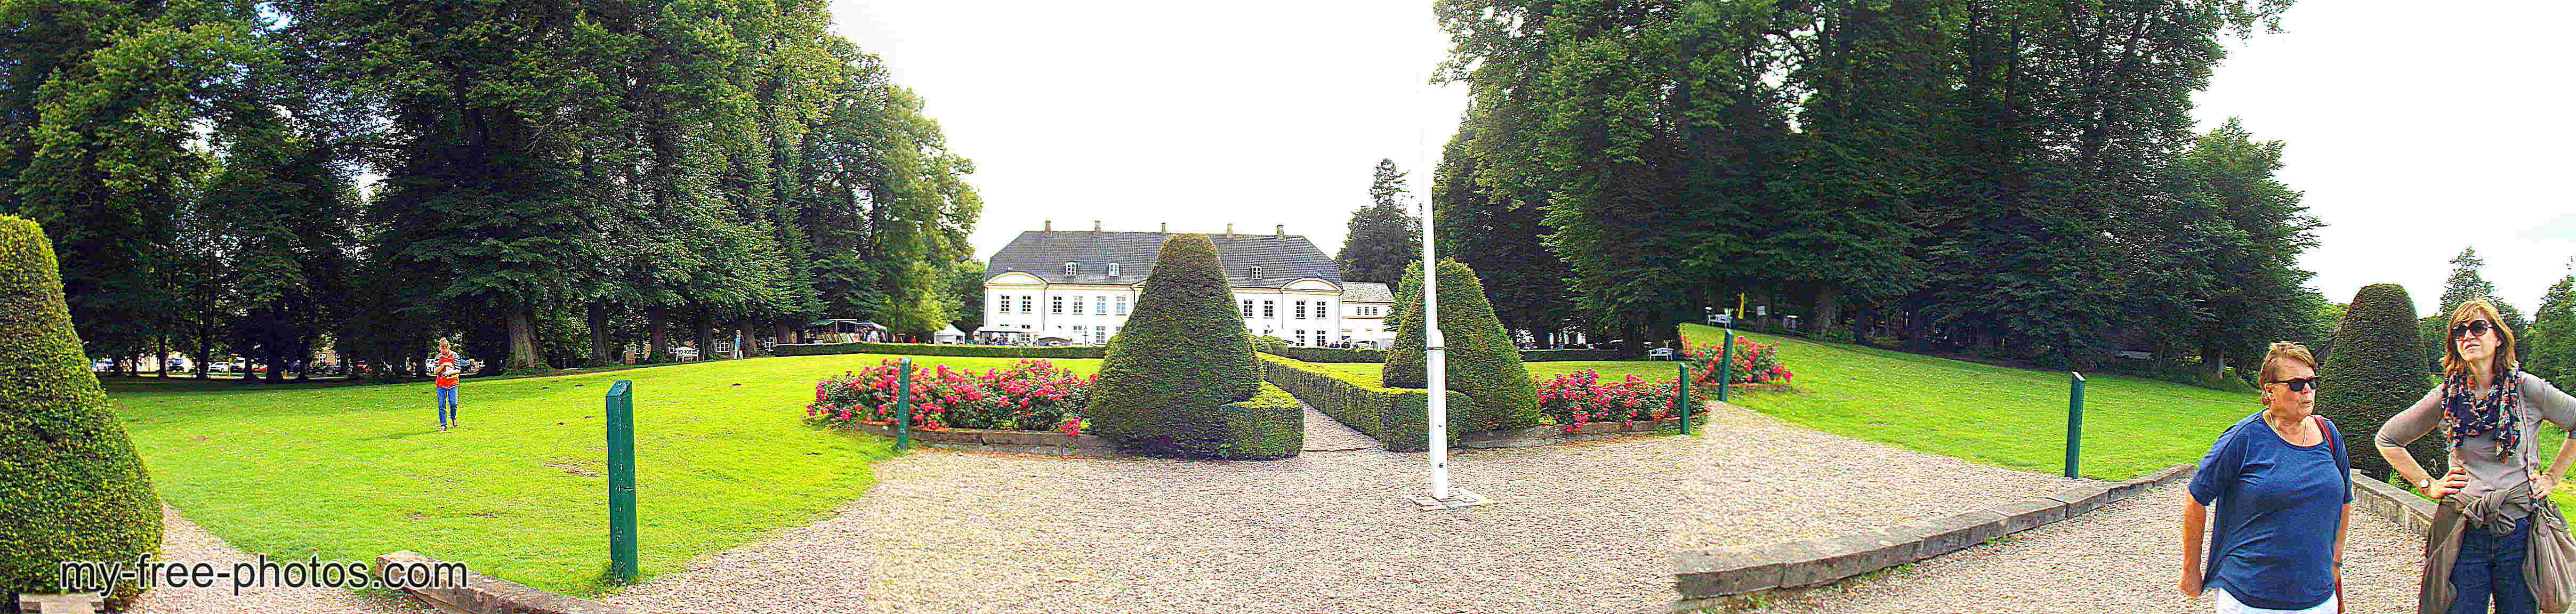 louisenlund castle